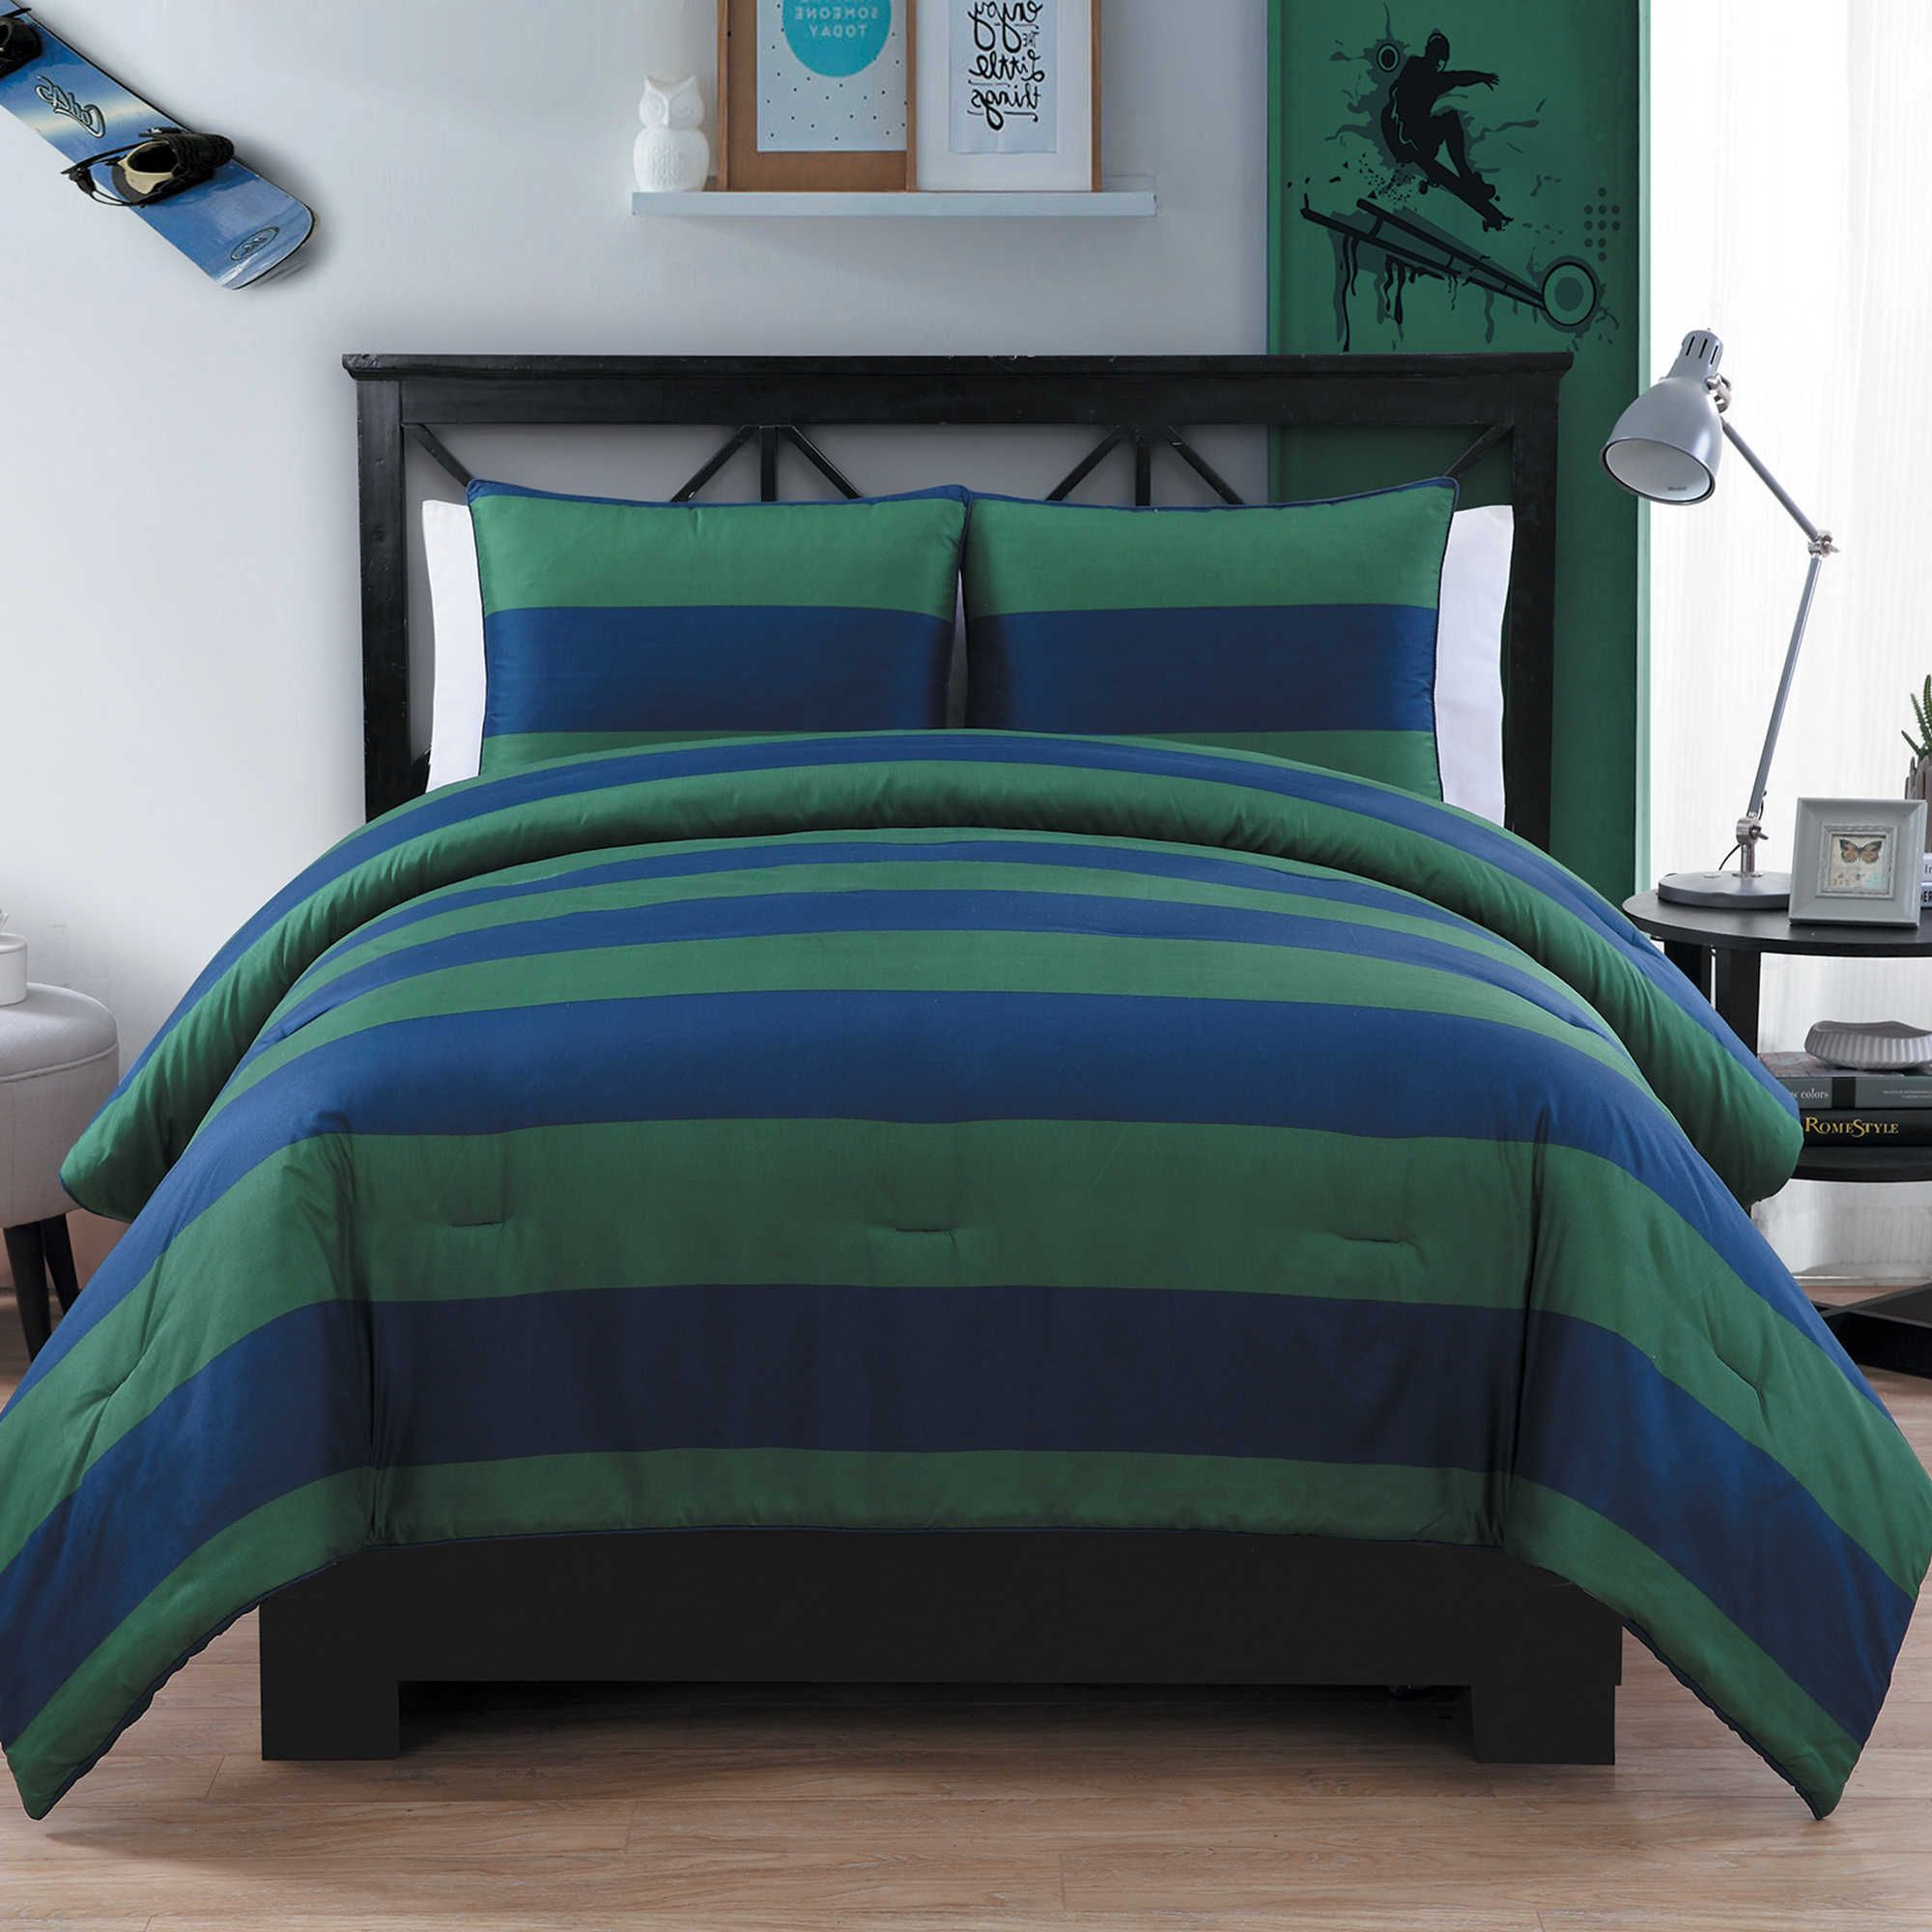 laurel orders free target piece artisan park ruffle grey sizes comforter set sia beds sets twin on colors for over shipping madison sizesey amy xl comforters